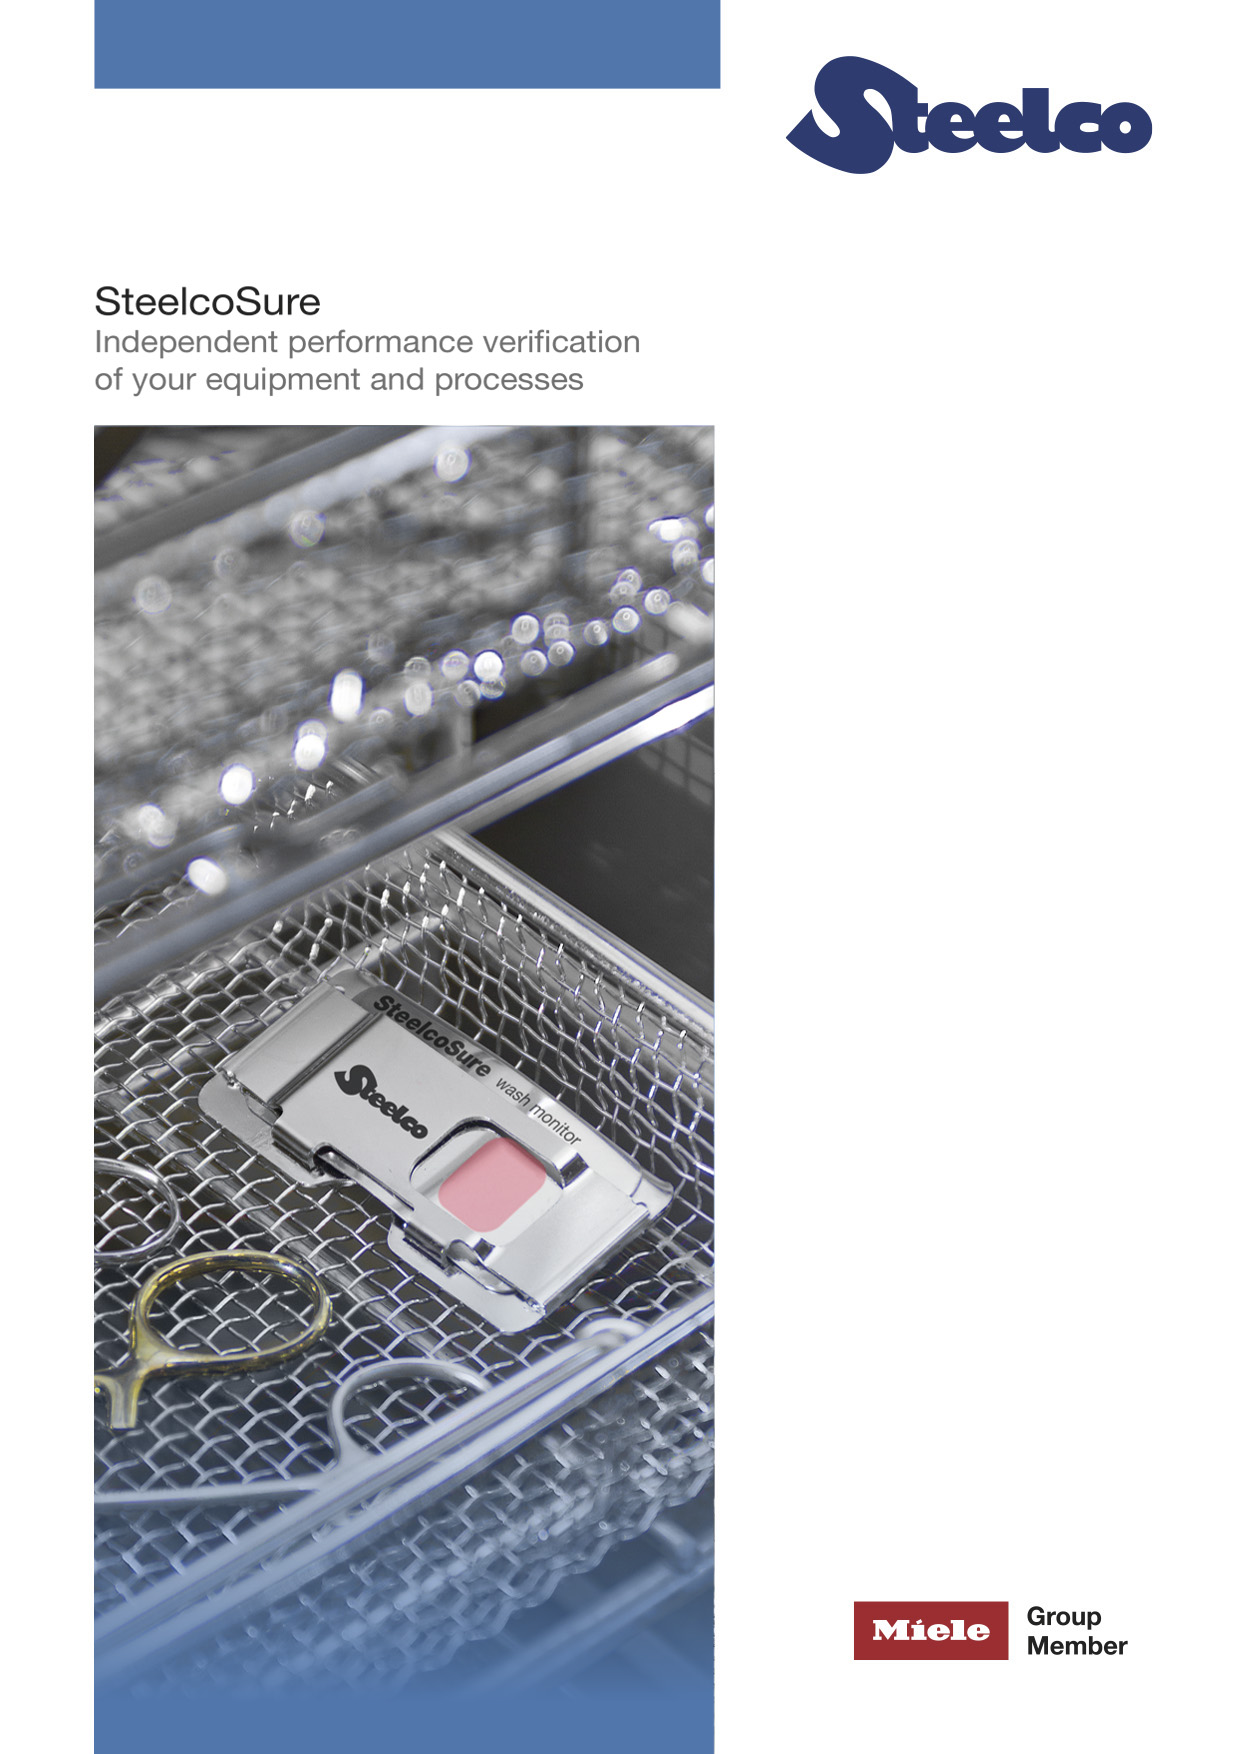 SteelcoSure - Process monitoring